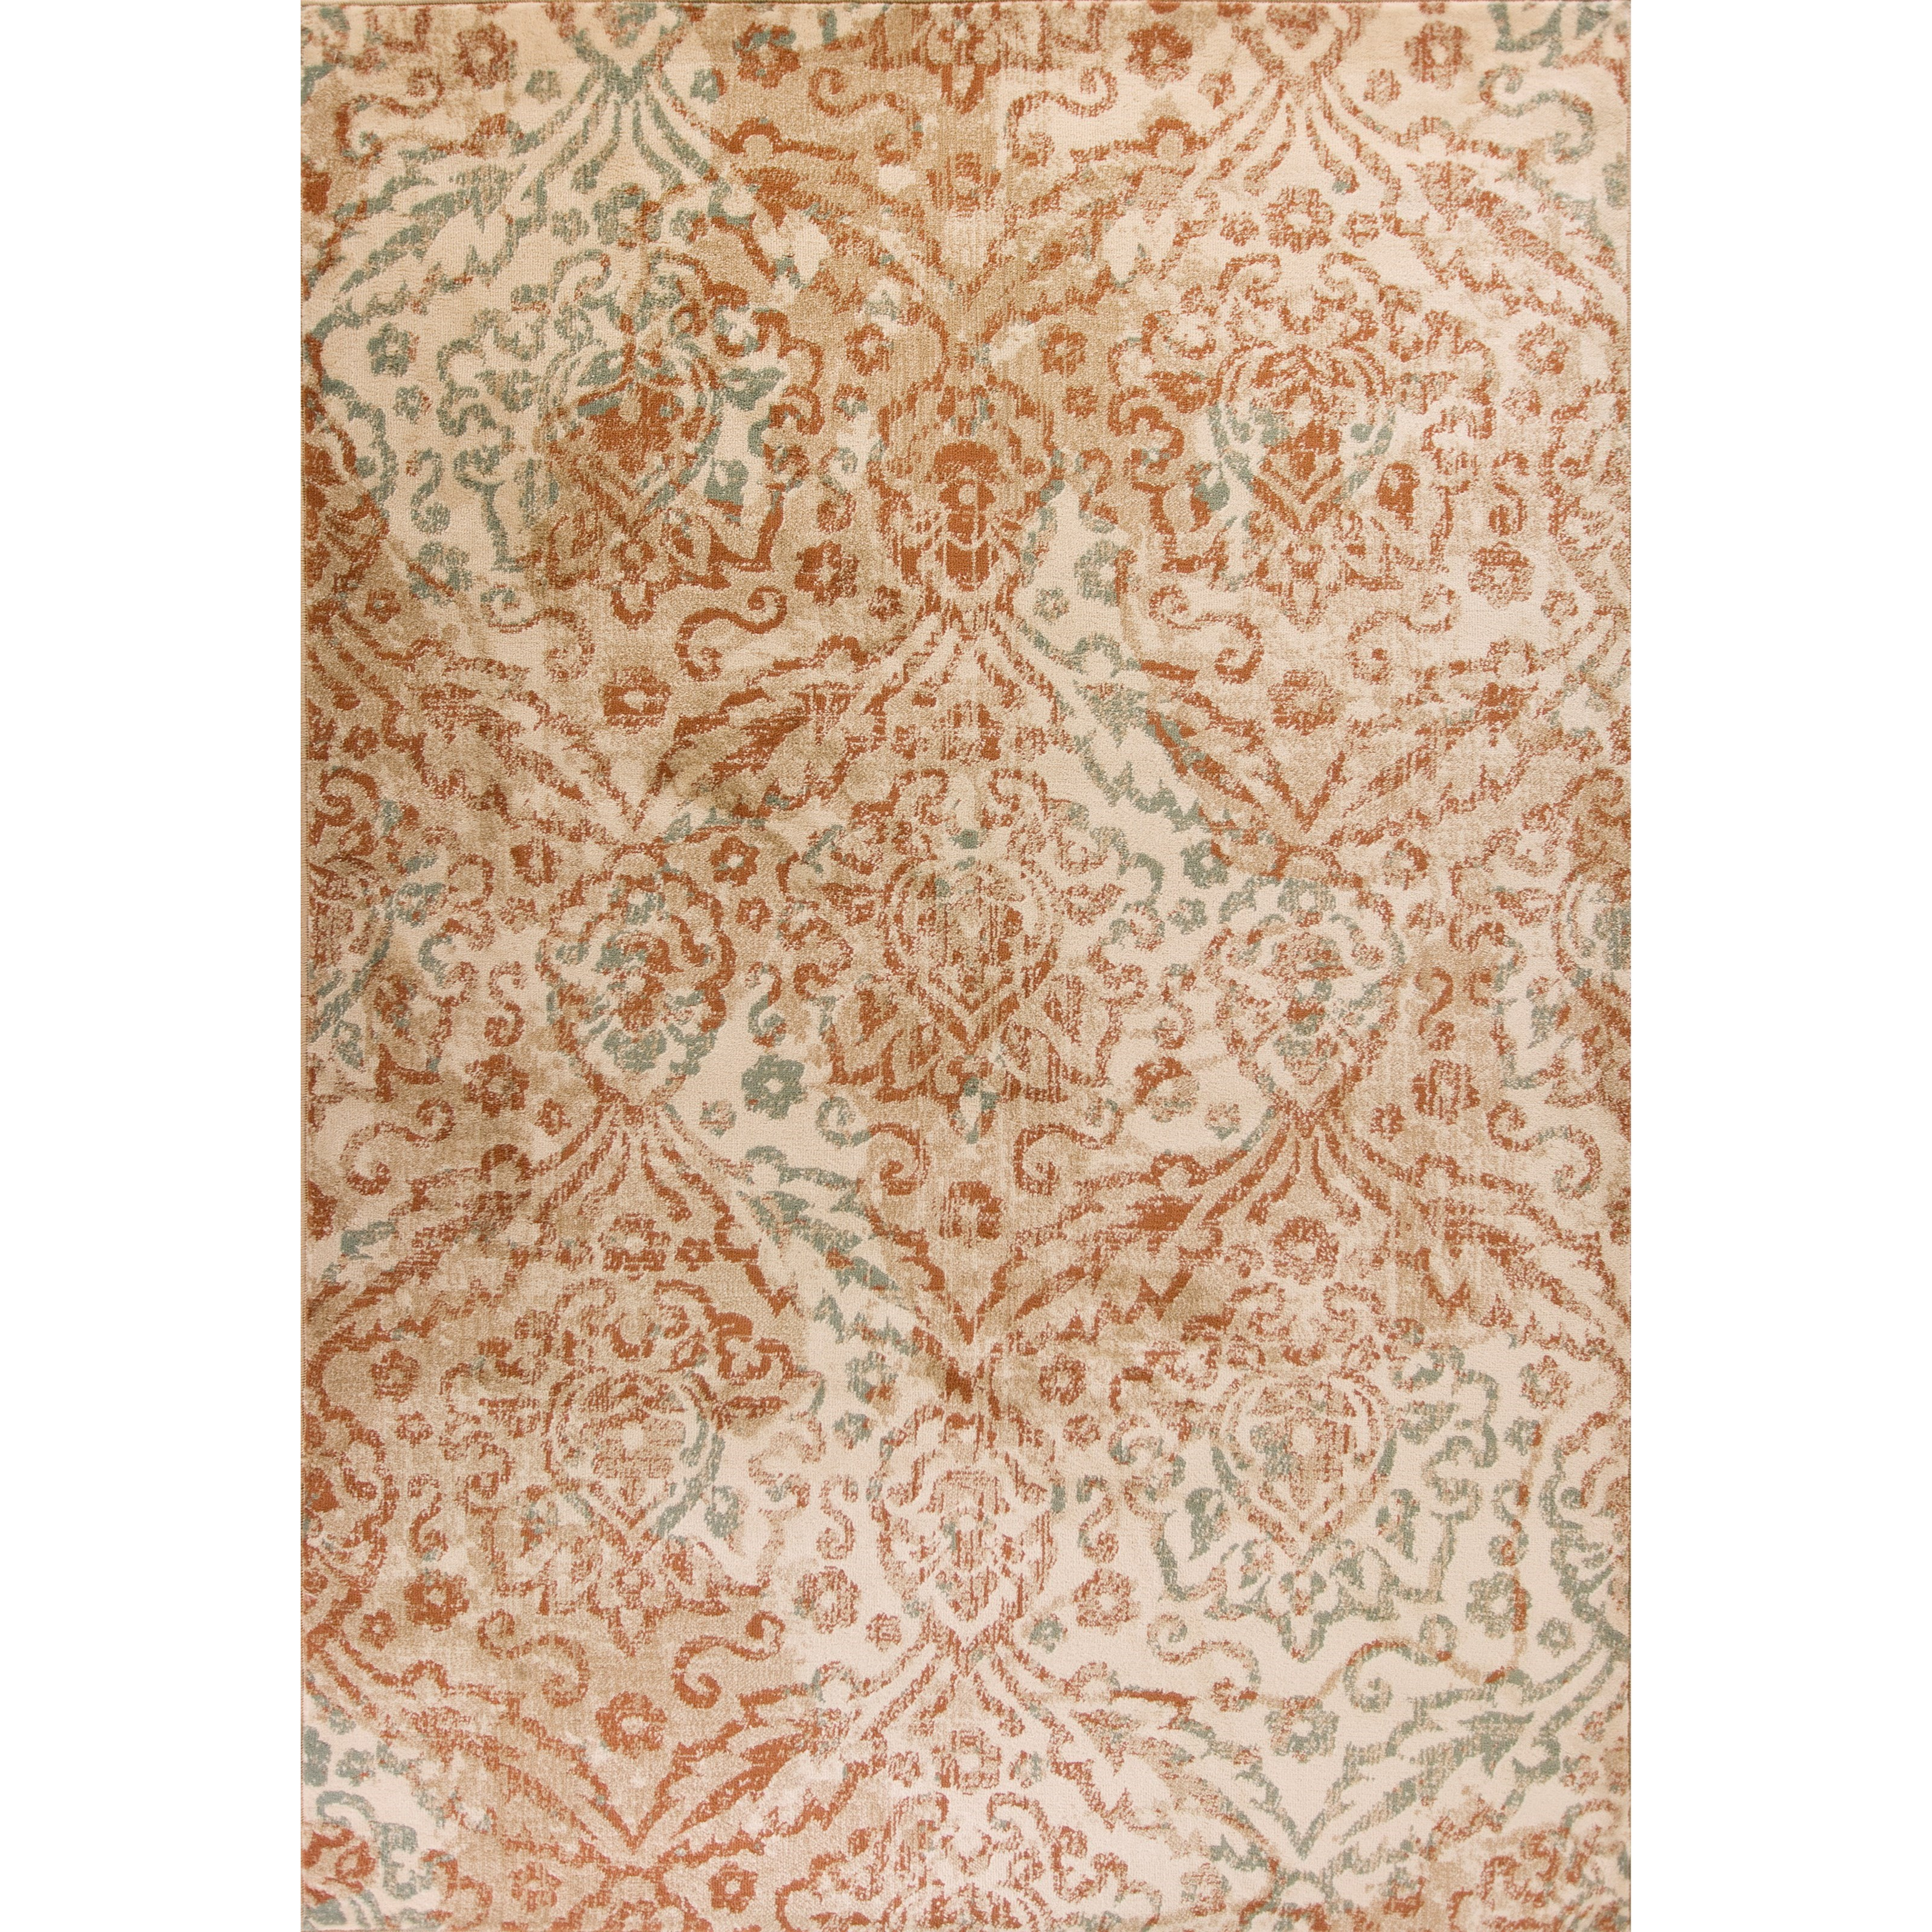 """Heritage 3'3"""" X 4'11"""" Sand Traditions Area Rug by Kas at Wilson's Furniture"""